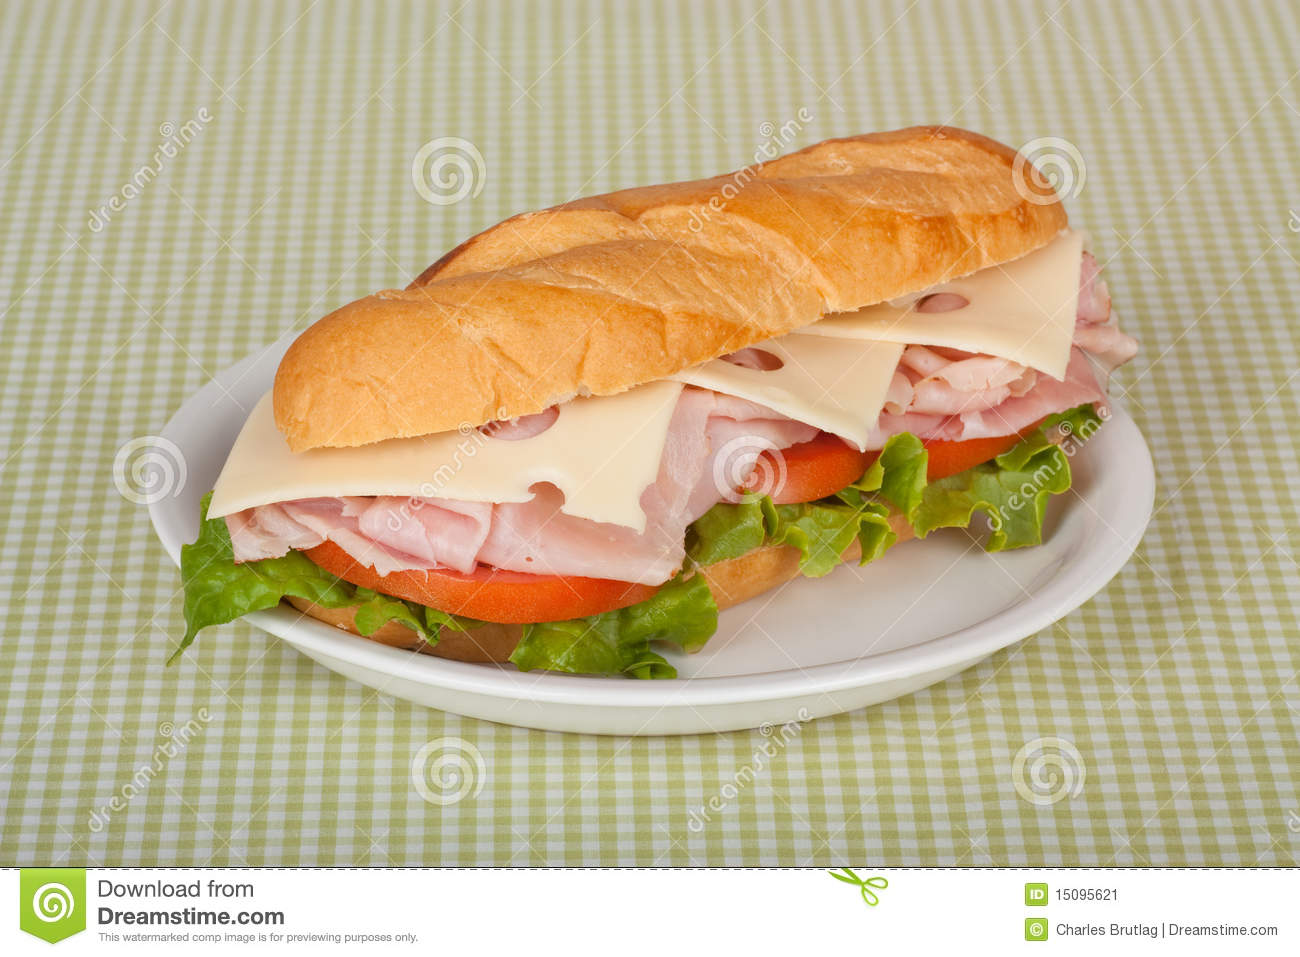 Ham And Cheese Sandwich Stock Image - Image: 15095621